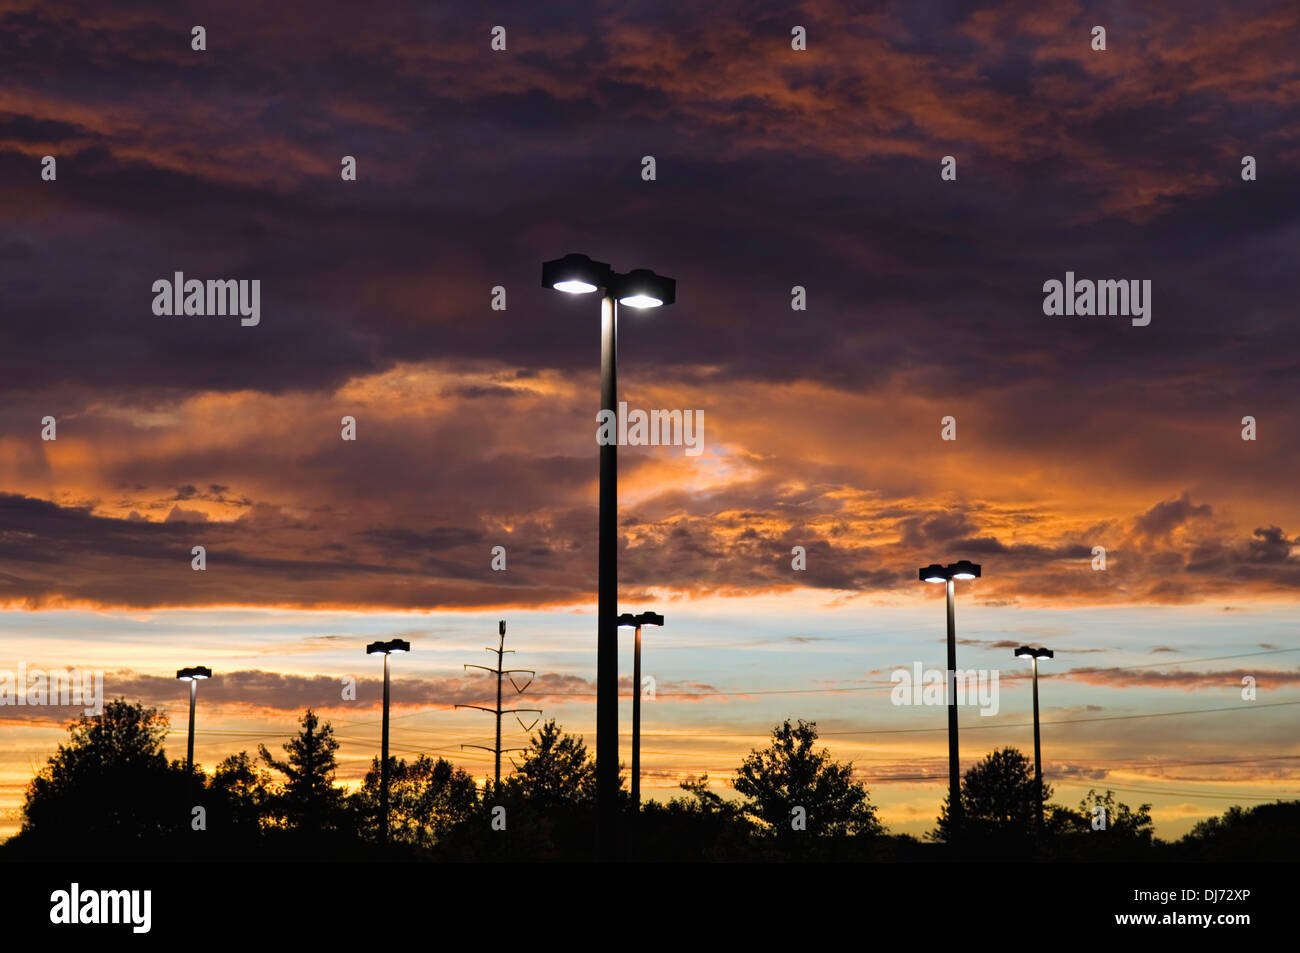 Sunset from Shopping Center - Stock Image